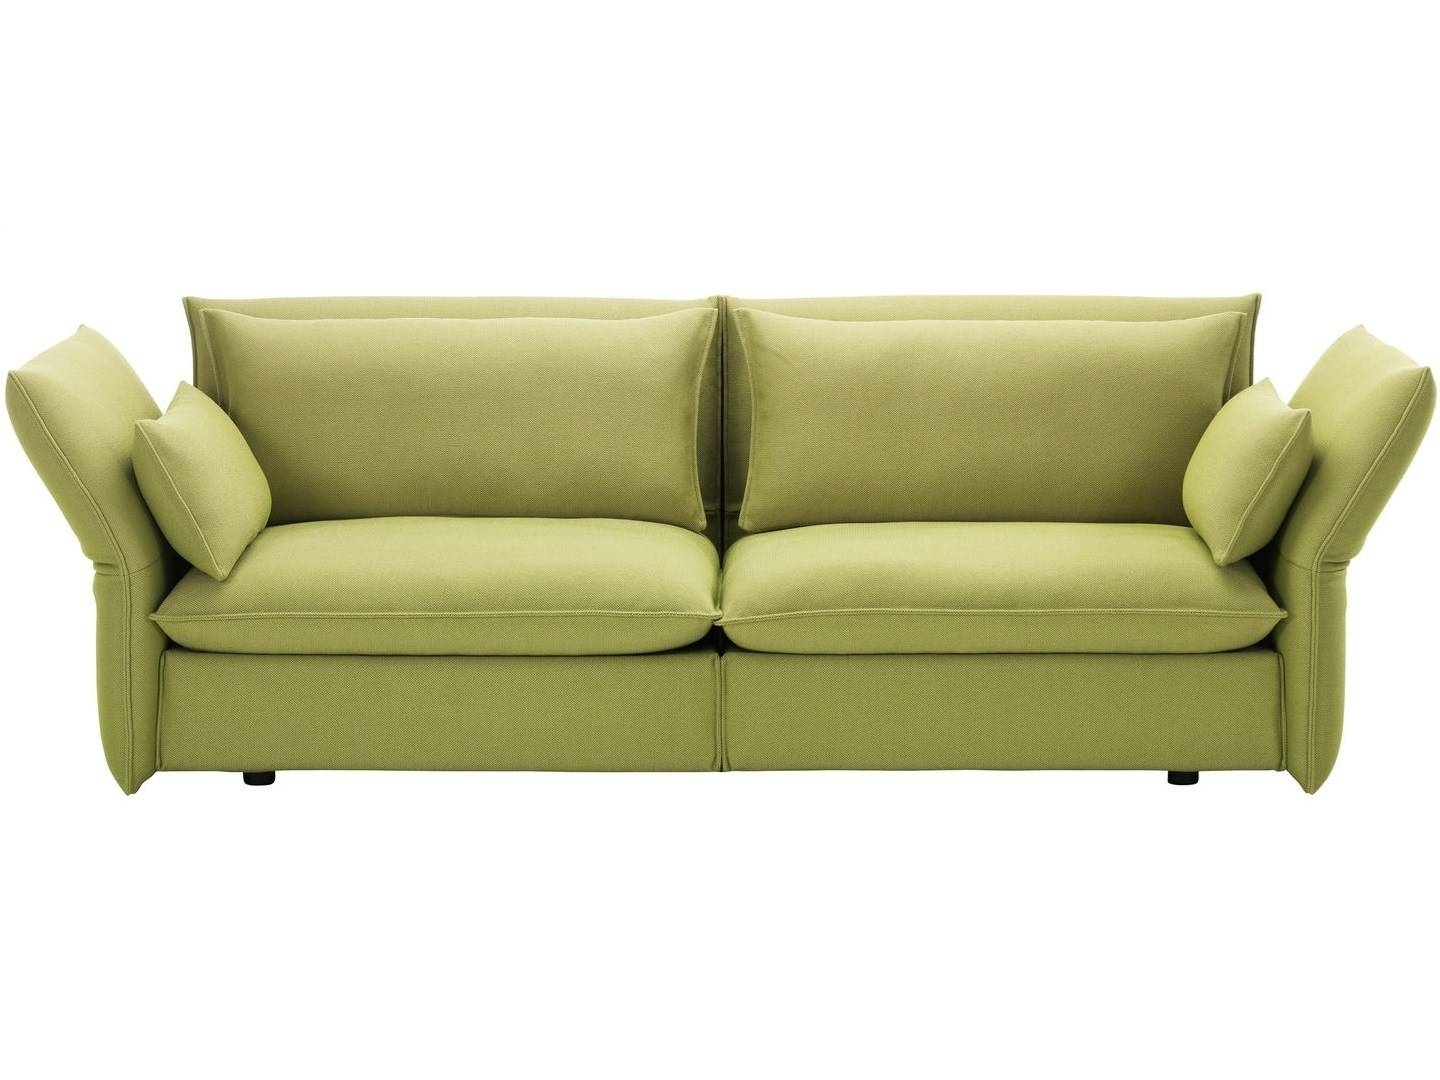 3 Seater Sofa With Removable Cover Mariposa 3-Seatervitra intended for Sofa With Removable Cover (Image 1 of 30)